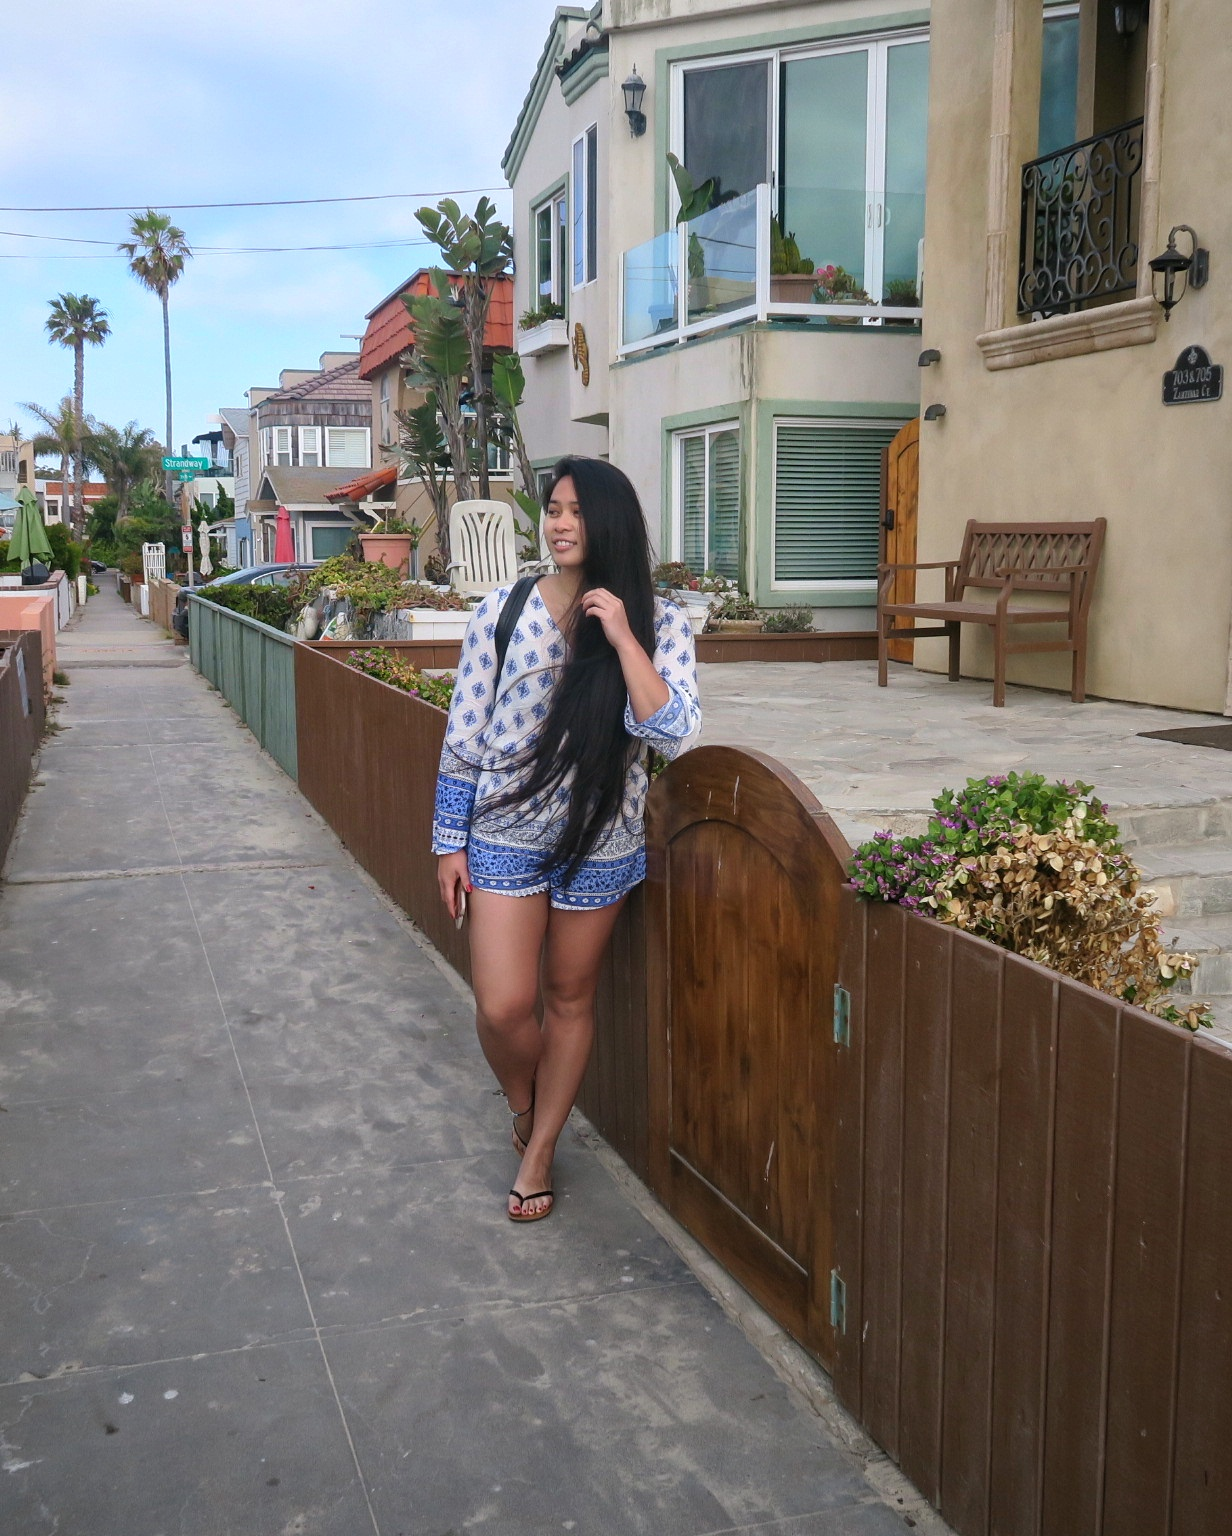 mission blvd beach san diego ootd